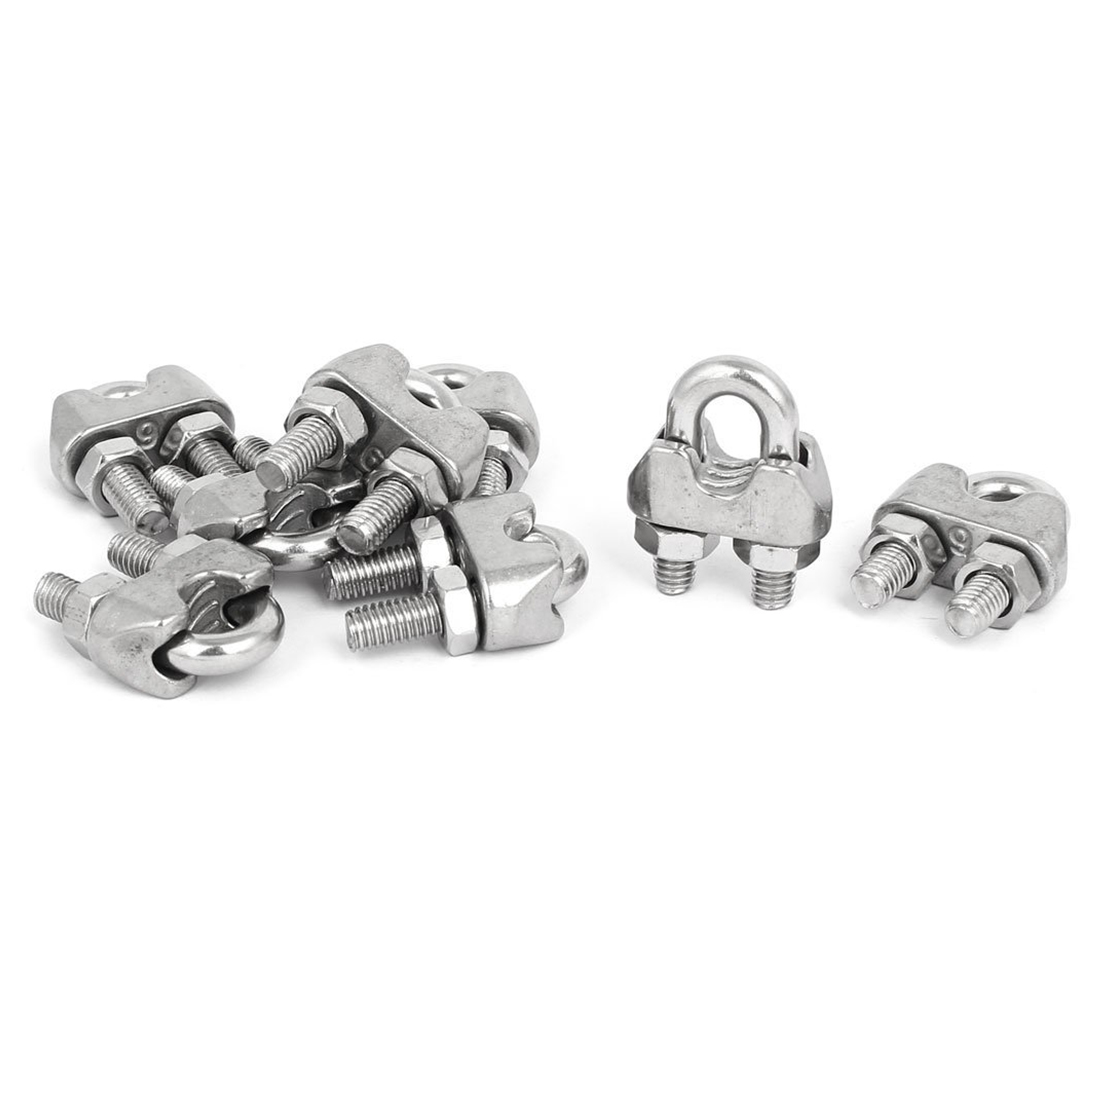 M6 1/4 Inch 304 Stainless Steel U-shape Bolt Saddle Clamps Cable Wire Rope Clips 8 Pcs